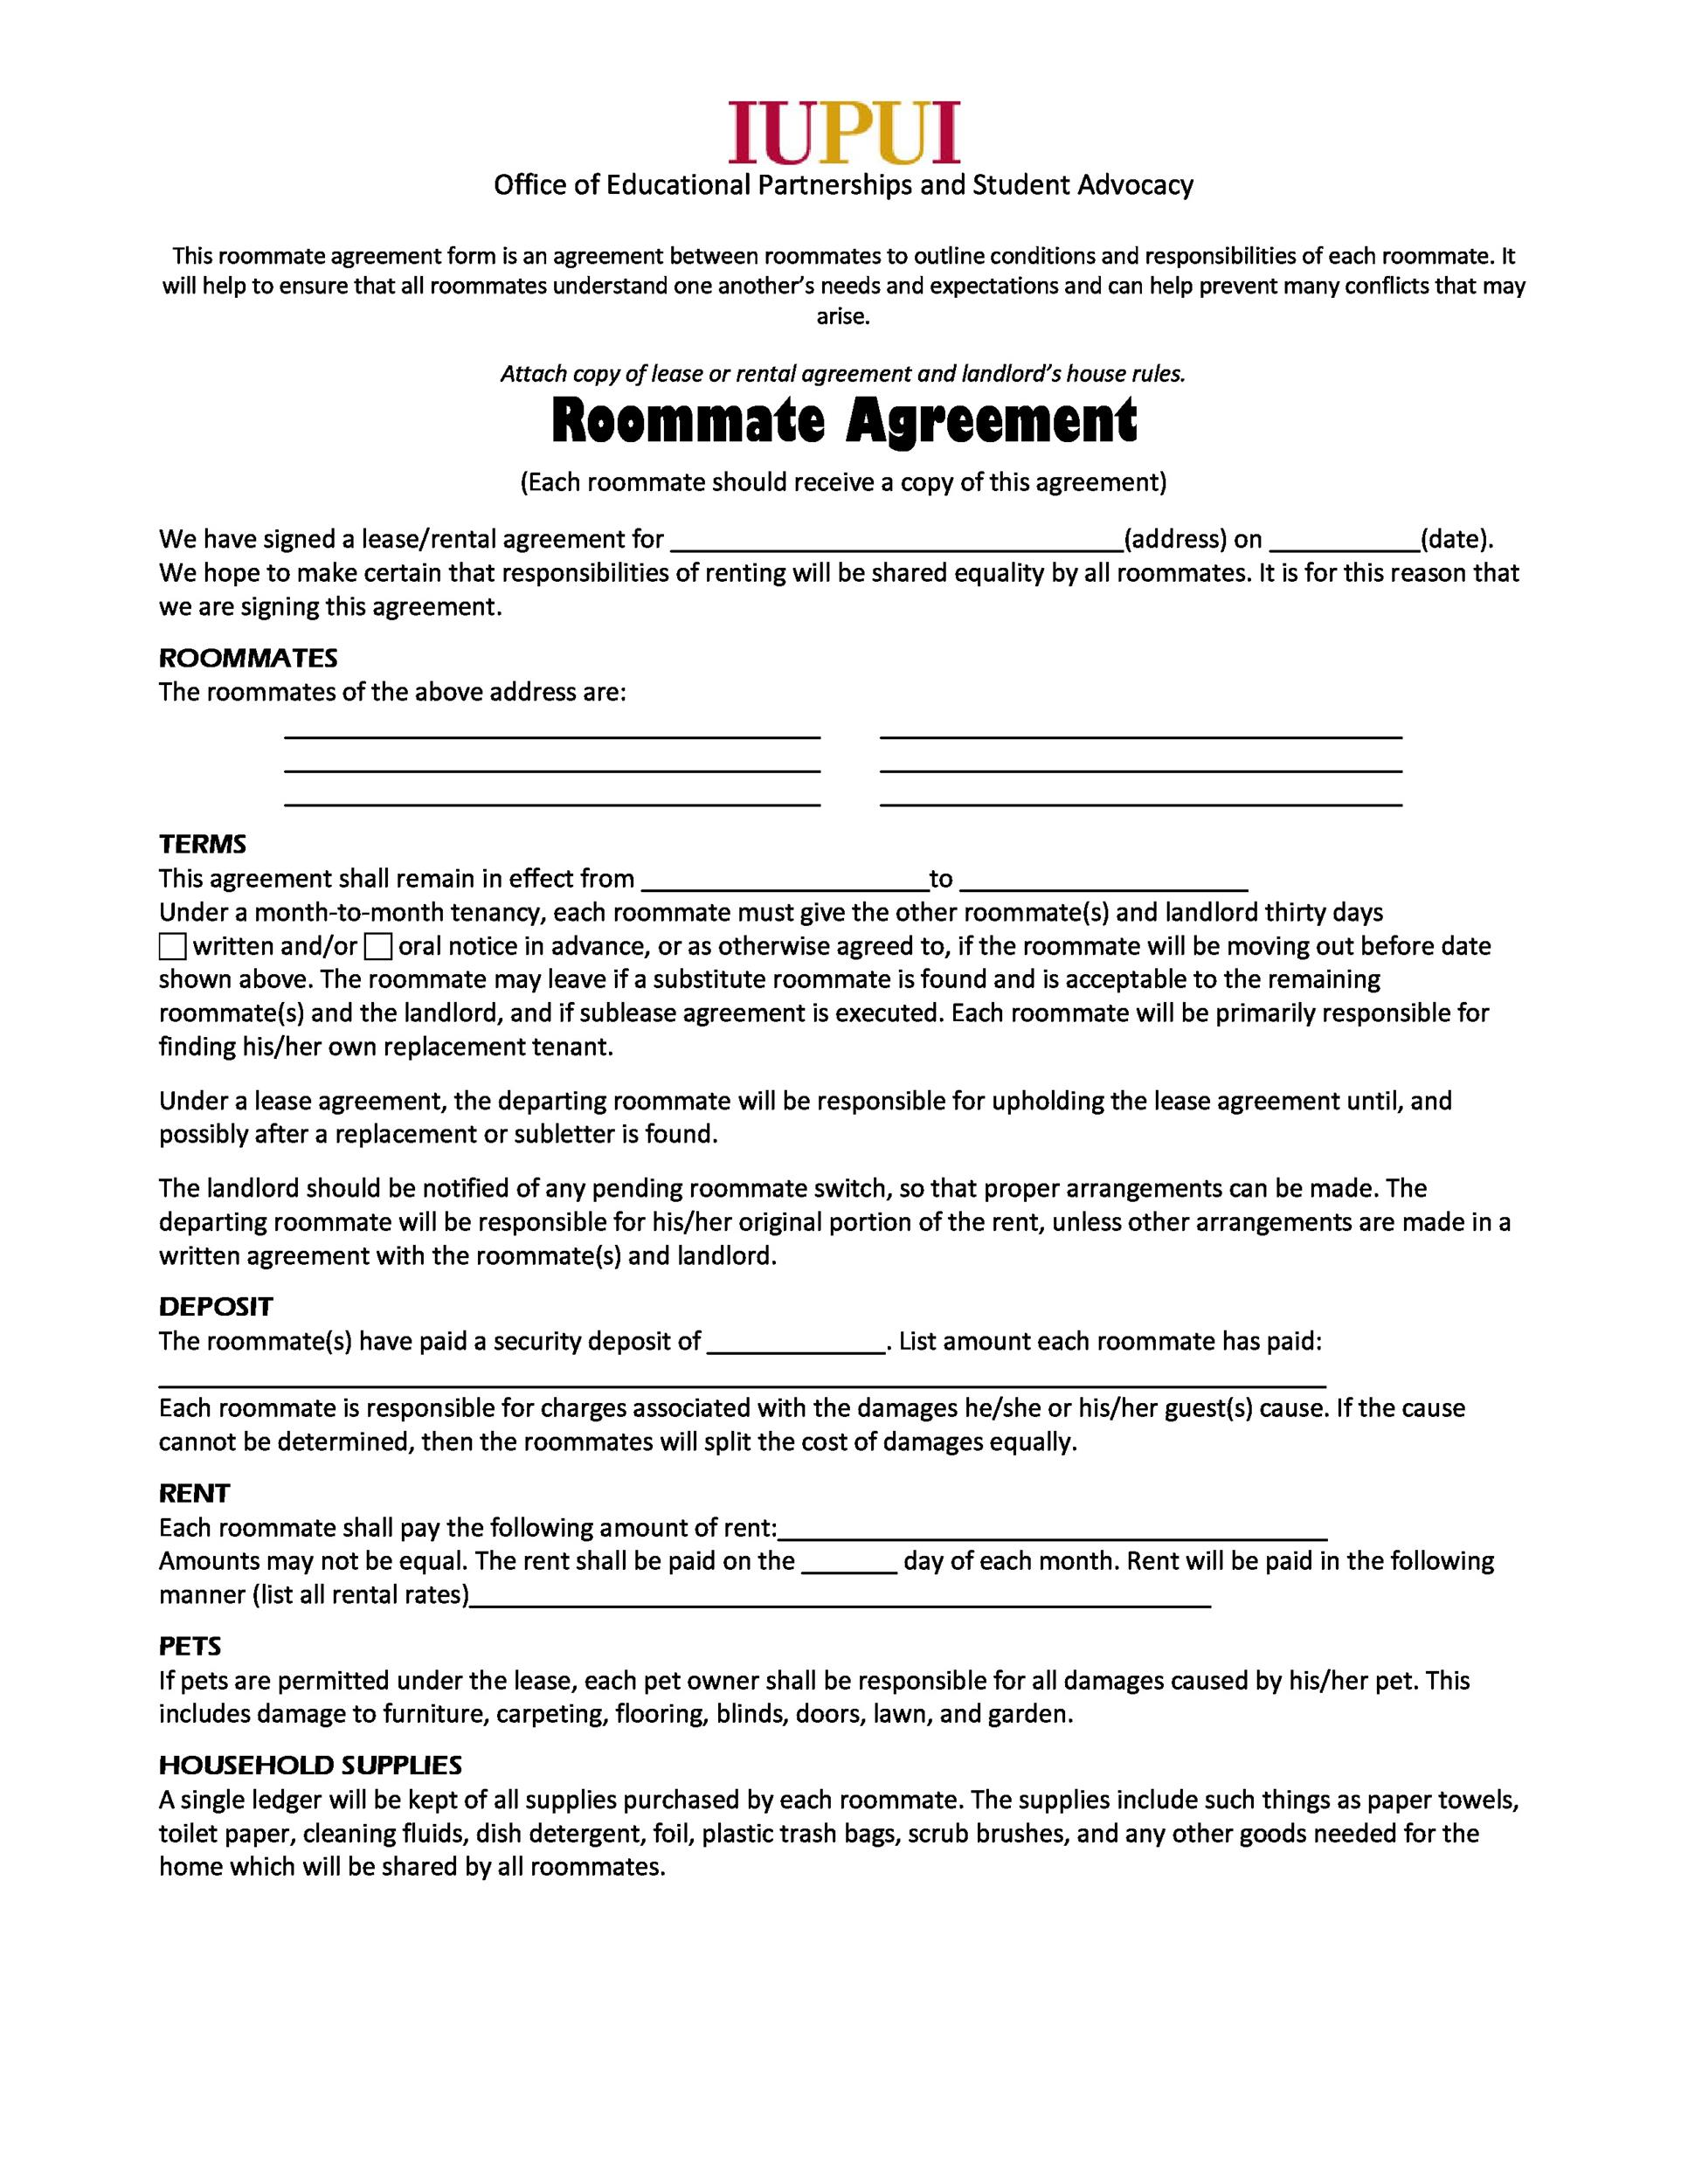 agrement forms 40  Free Roommate Agreement Templates